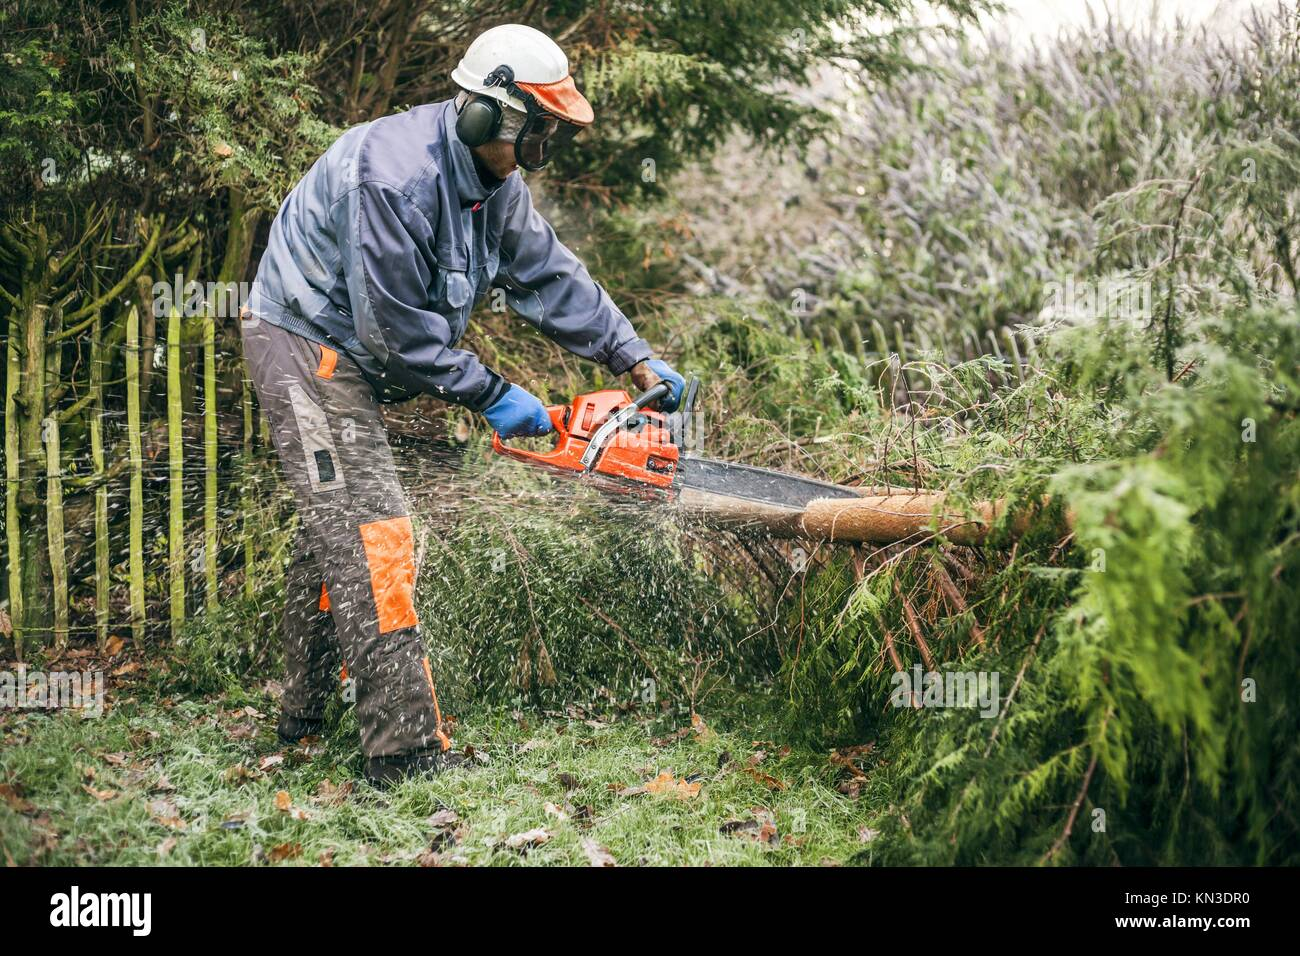 Professional gardener cutting tree with chainsaw. Stock Photo